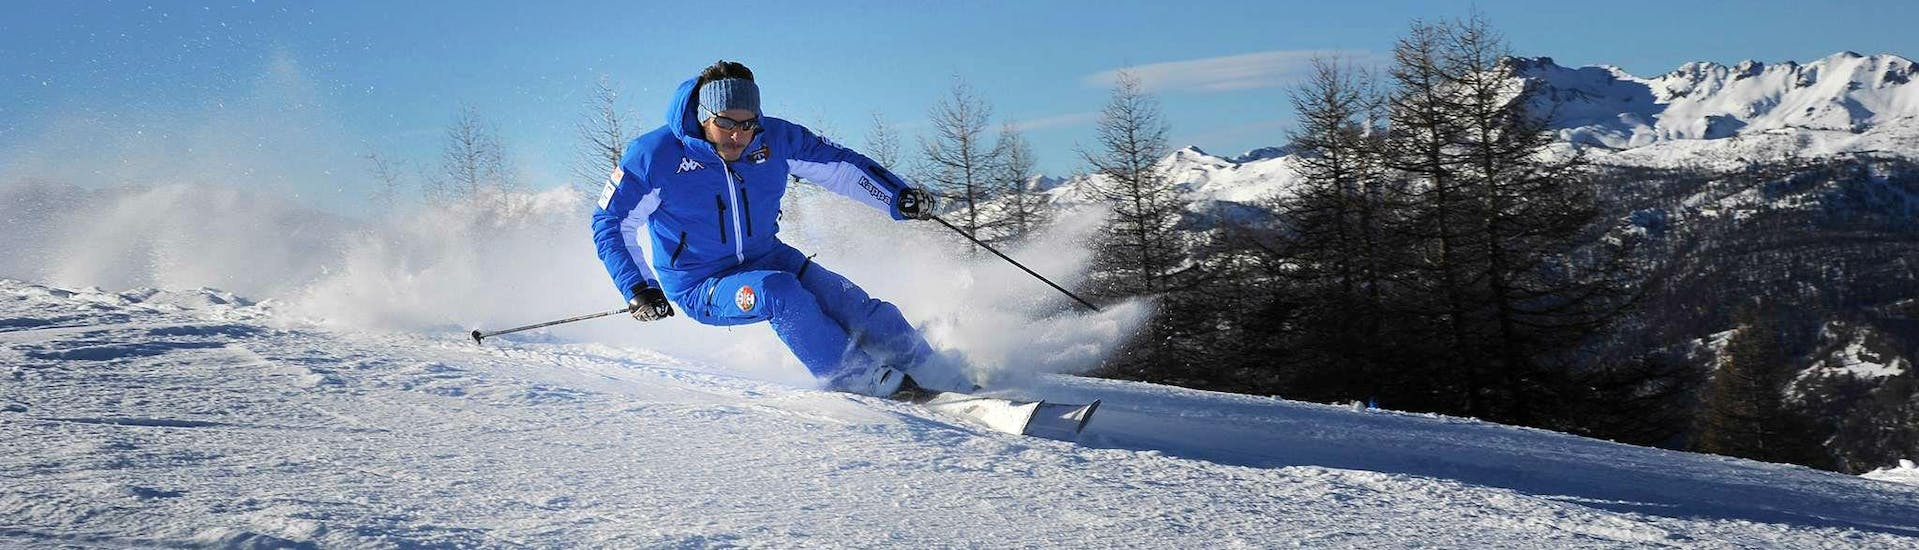 A ski instructor from the ski school Scuola di Sci Olimpionica in Sestriere is demonstrating the correct carving technique during one of the Private Ski Lessons for Adults - All Levels.